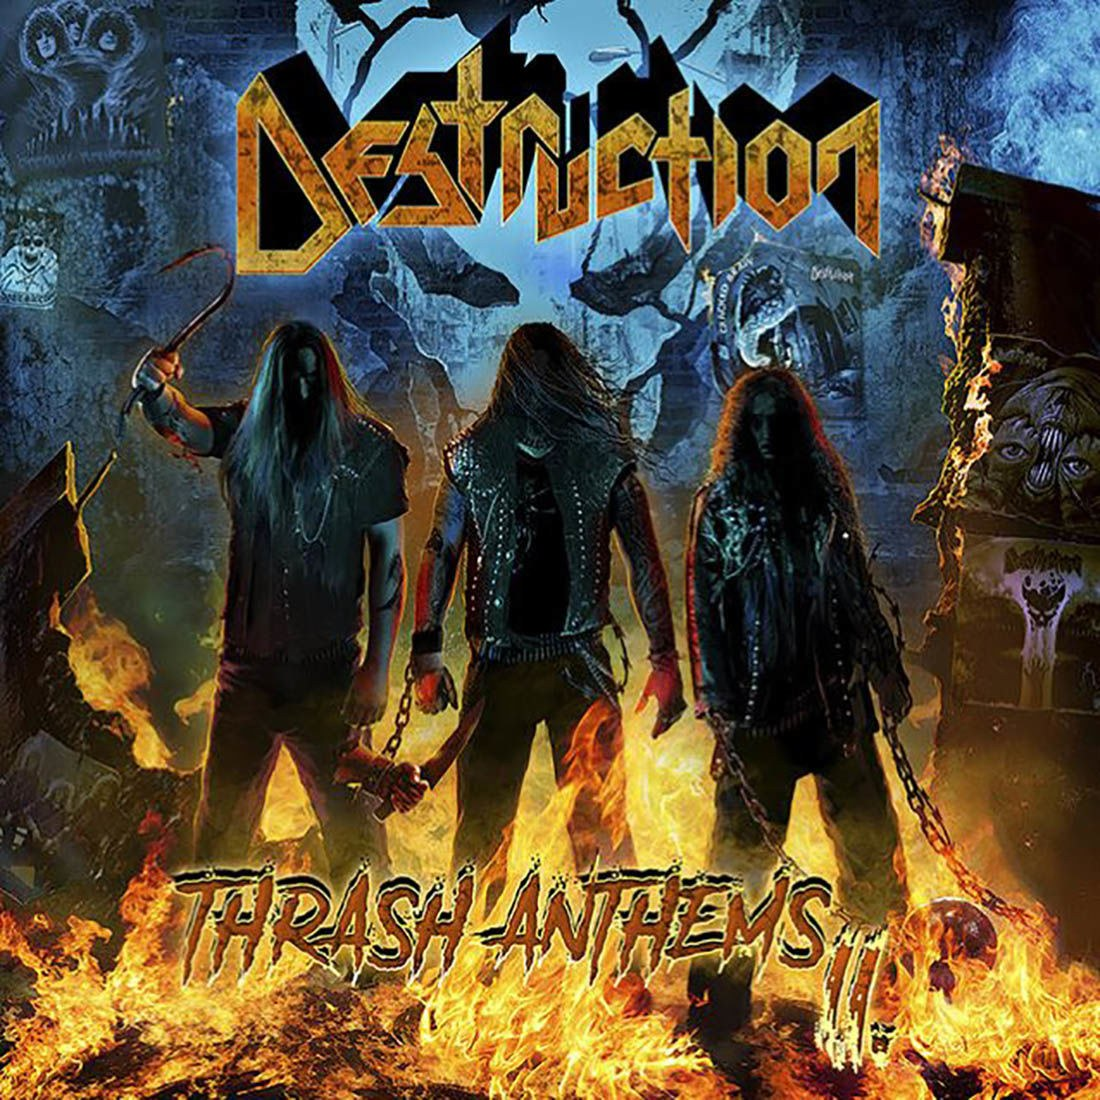 Review for Destruction - Thrash Anthems II